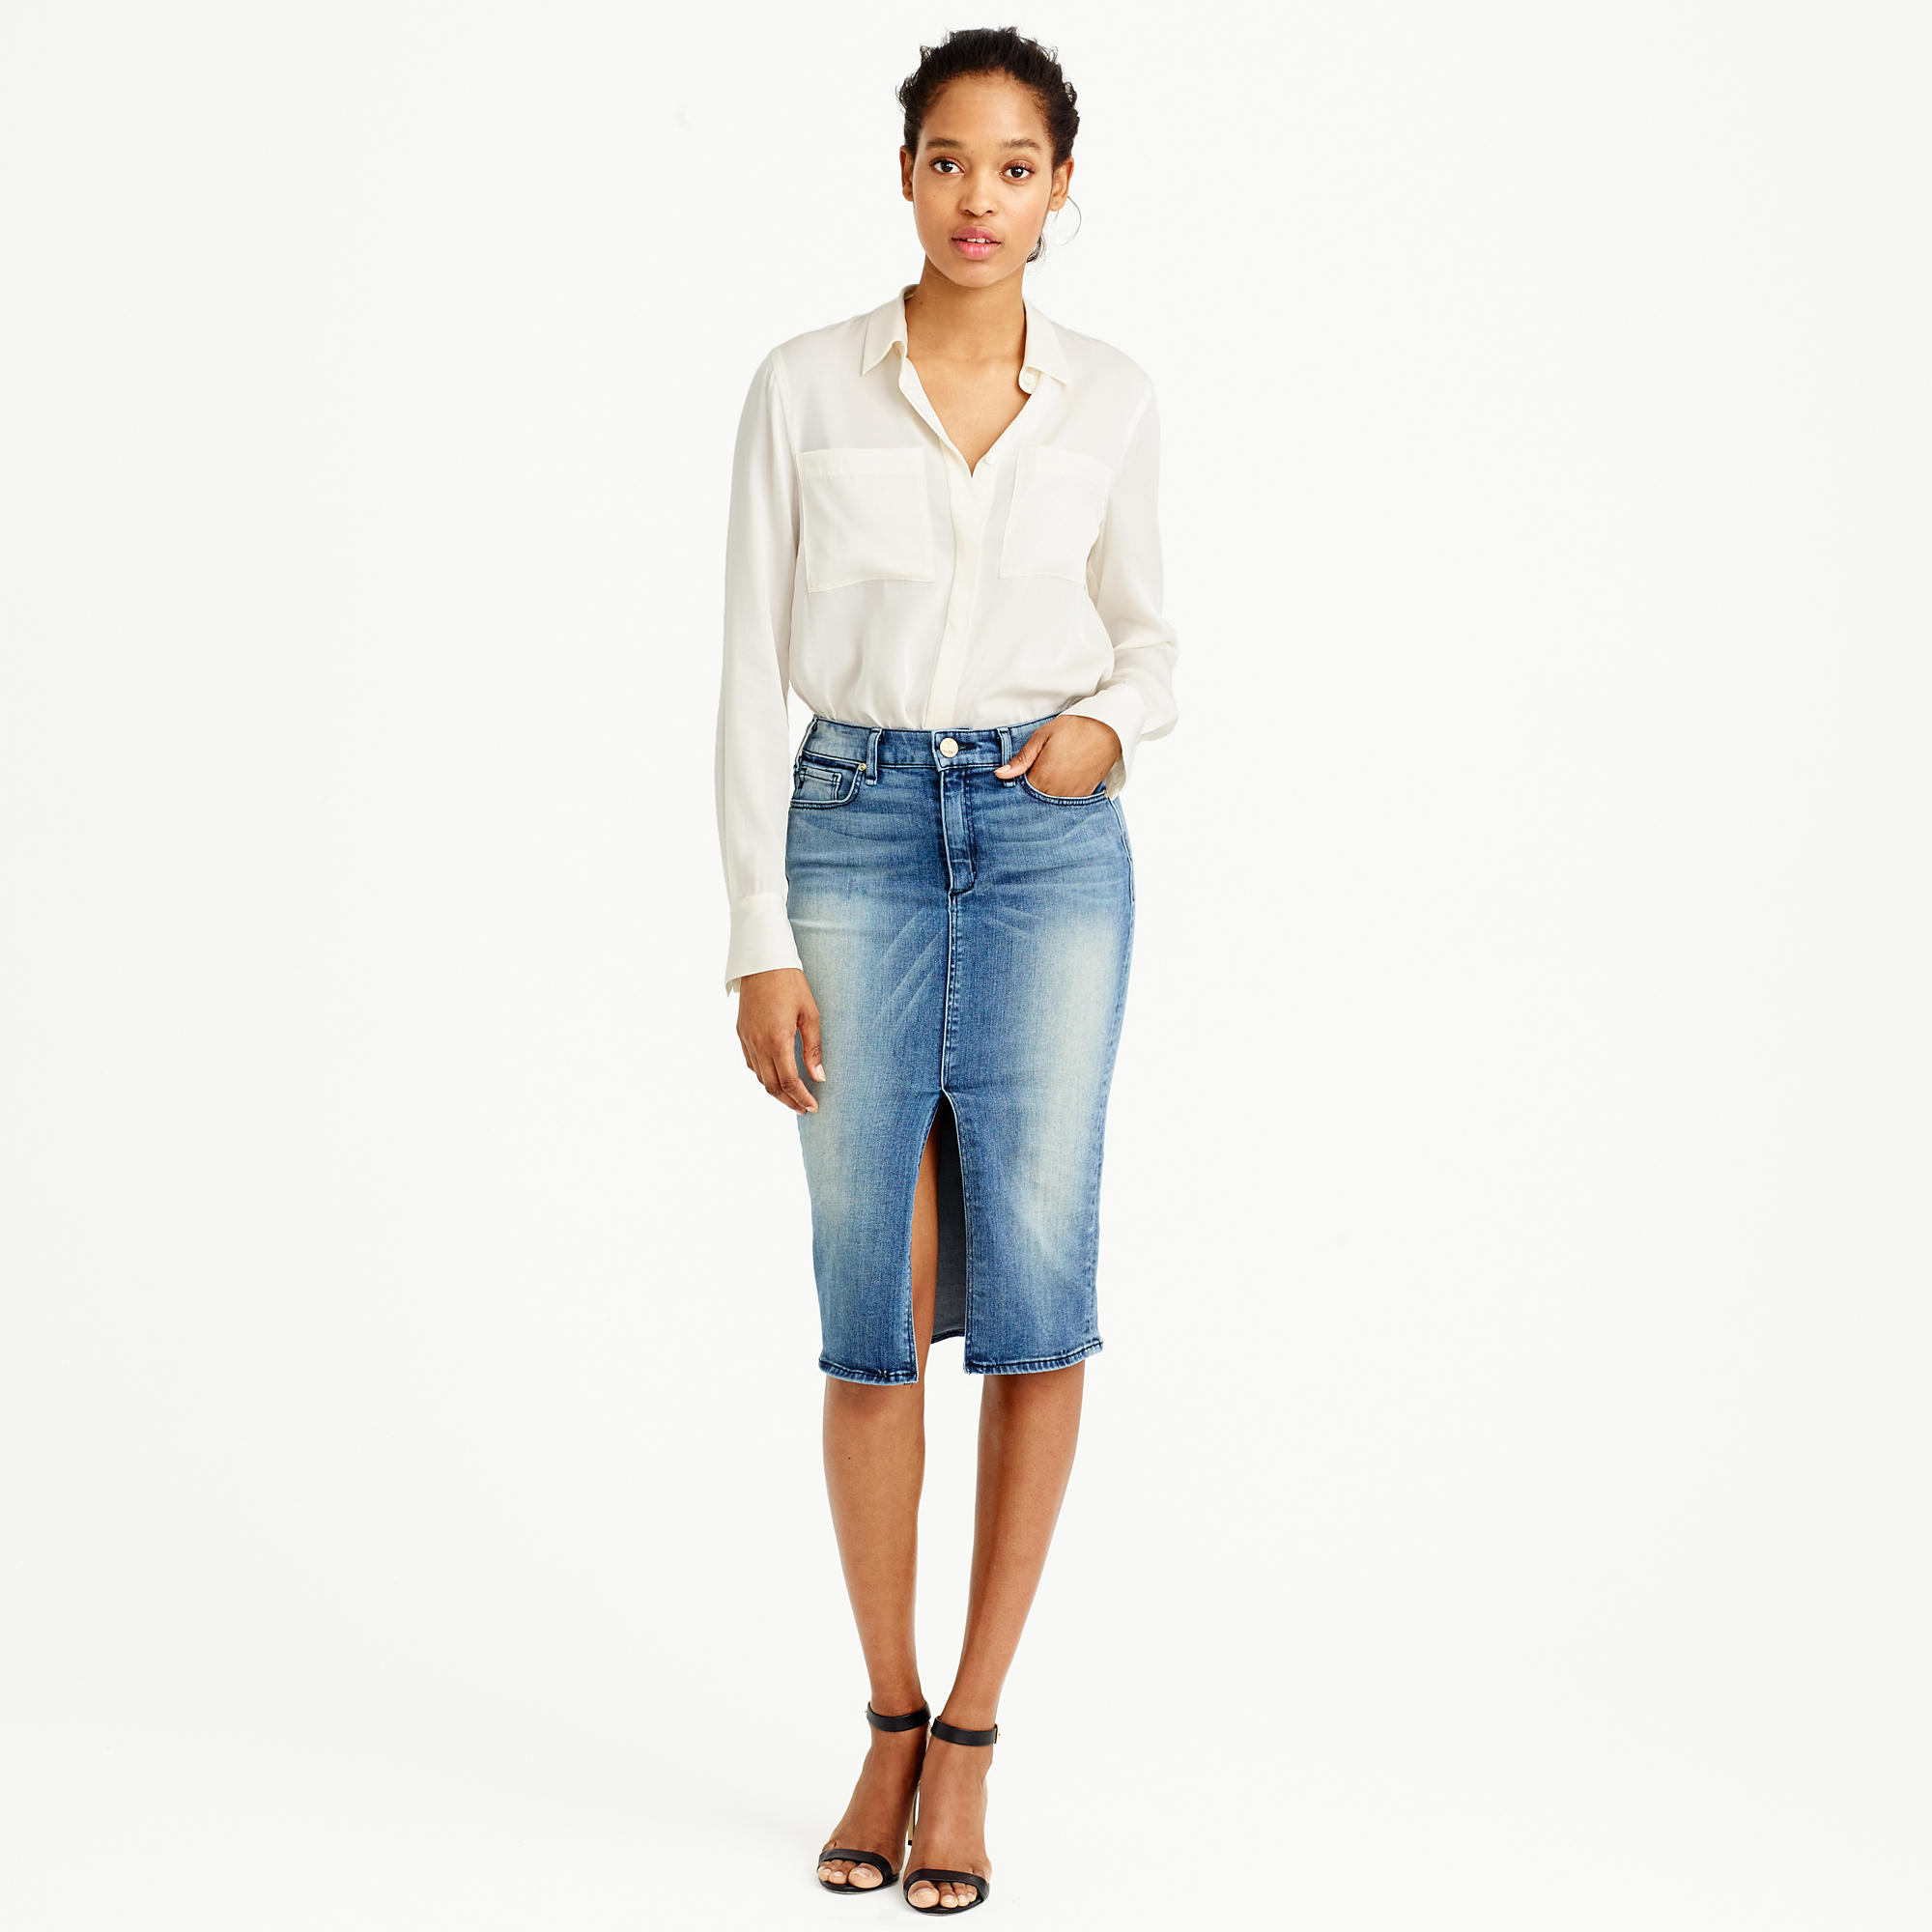 McGuire™ Marino denim skirt in royalist wash : Women denim | J.Crew